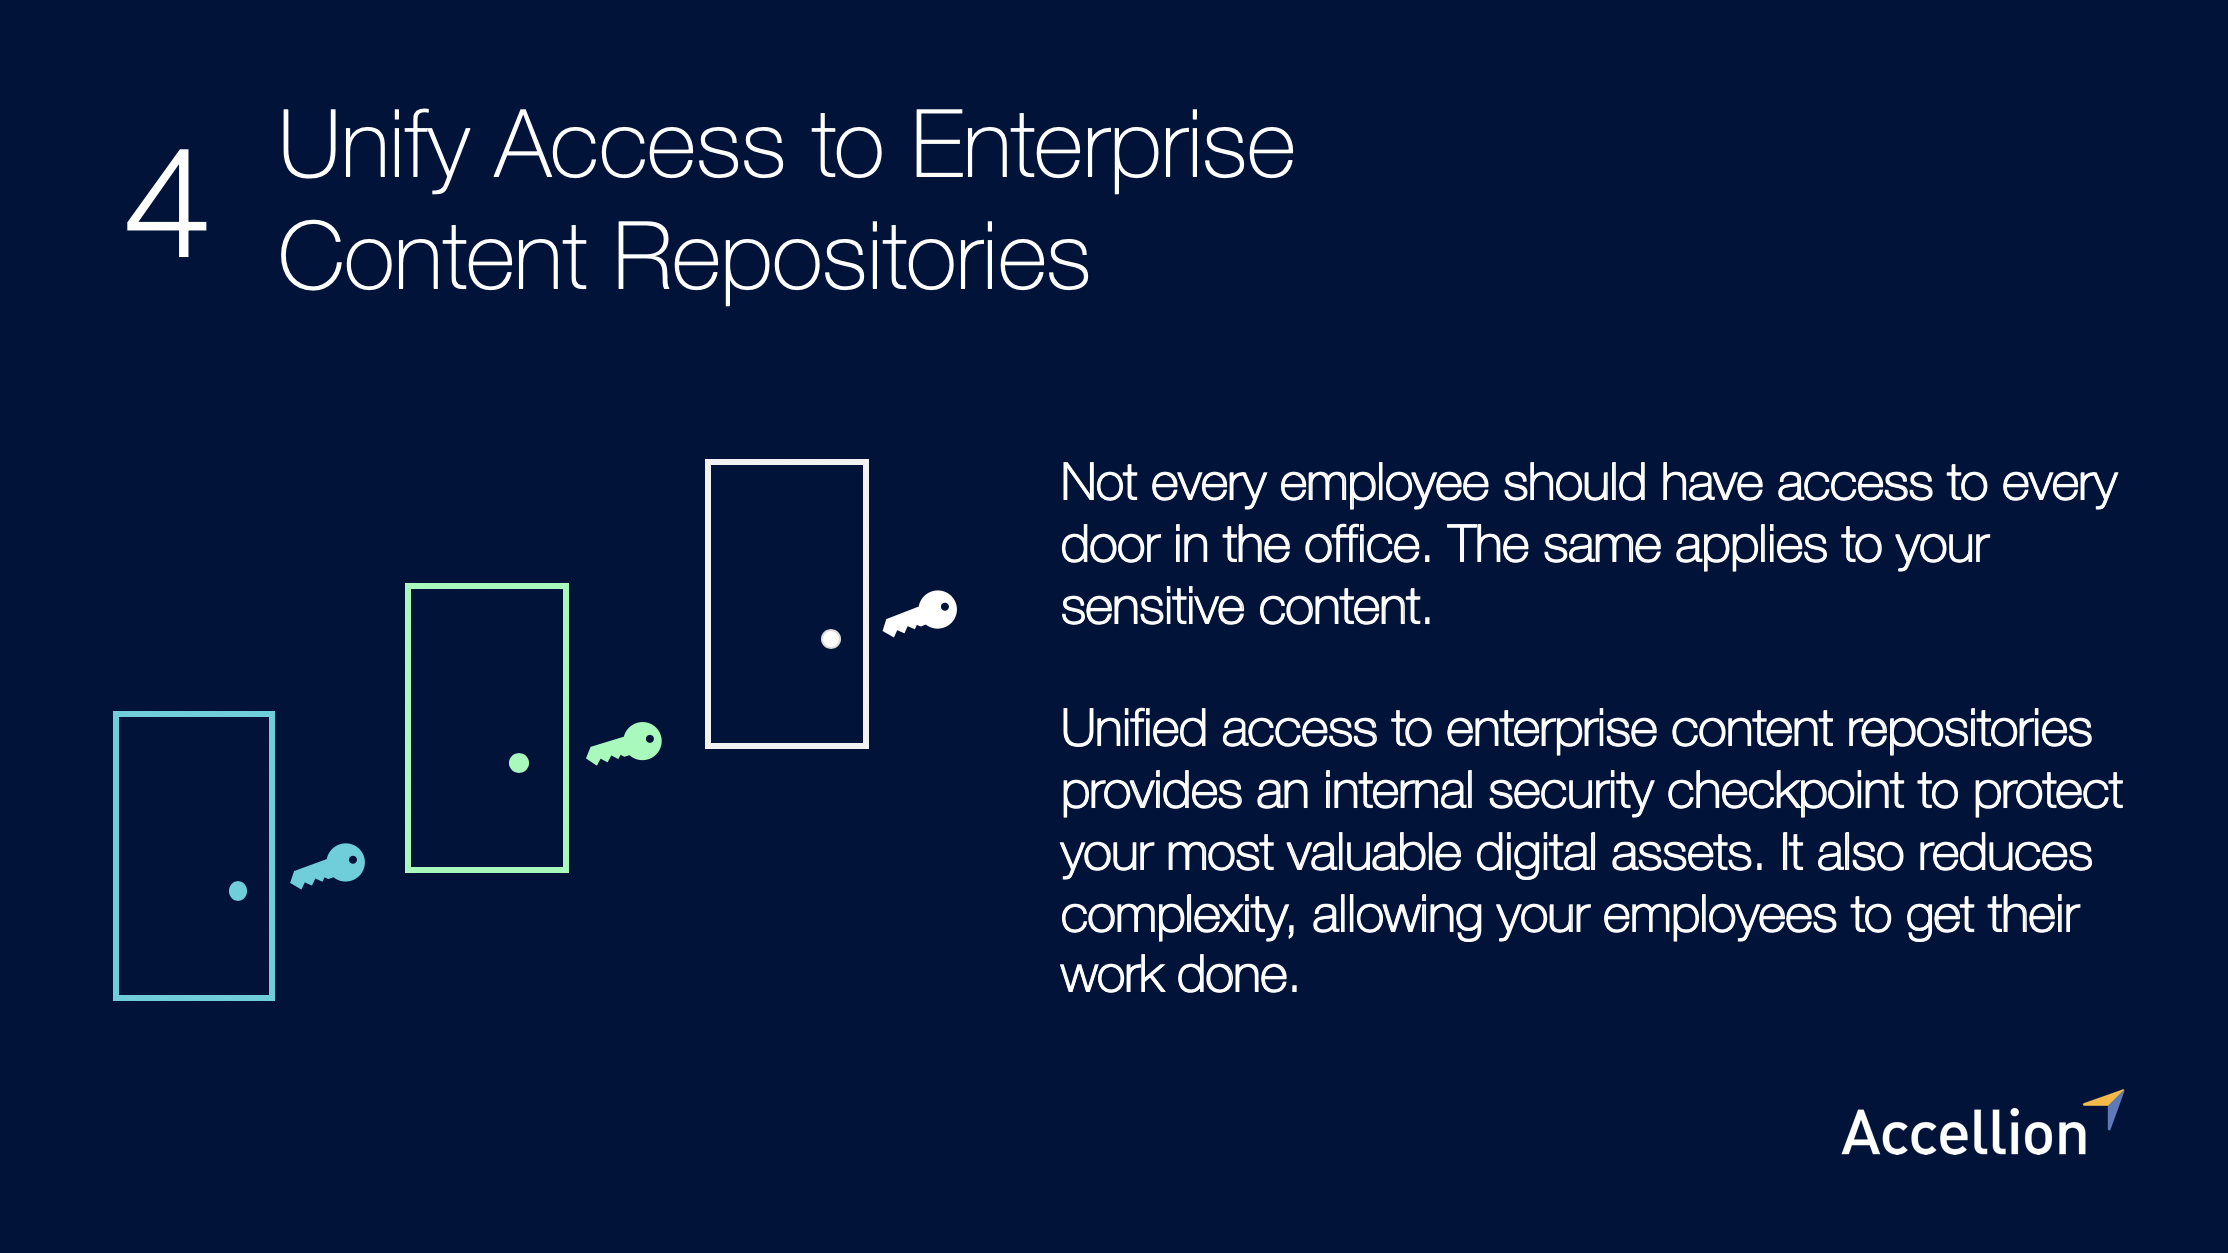 Unify Access to Enterprise Content Repositories